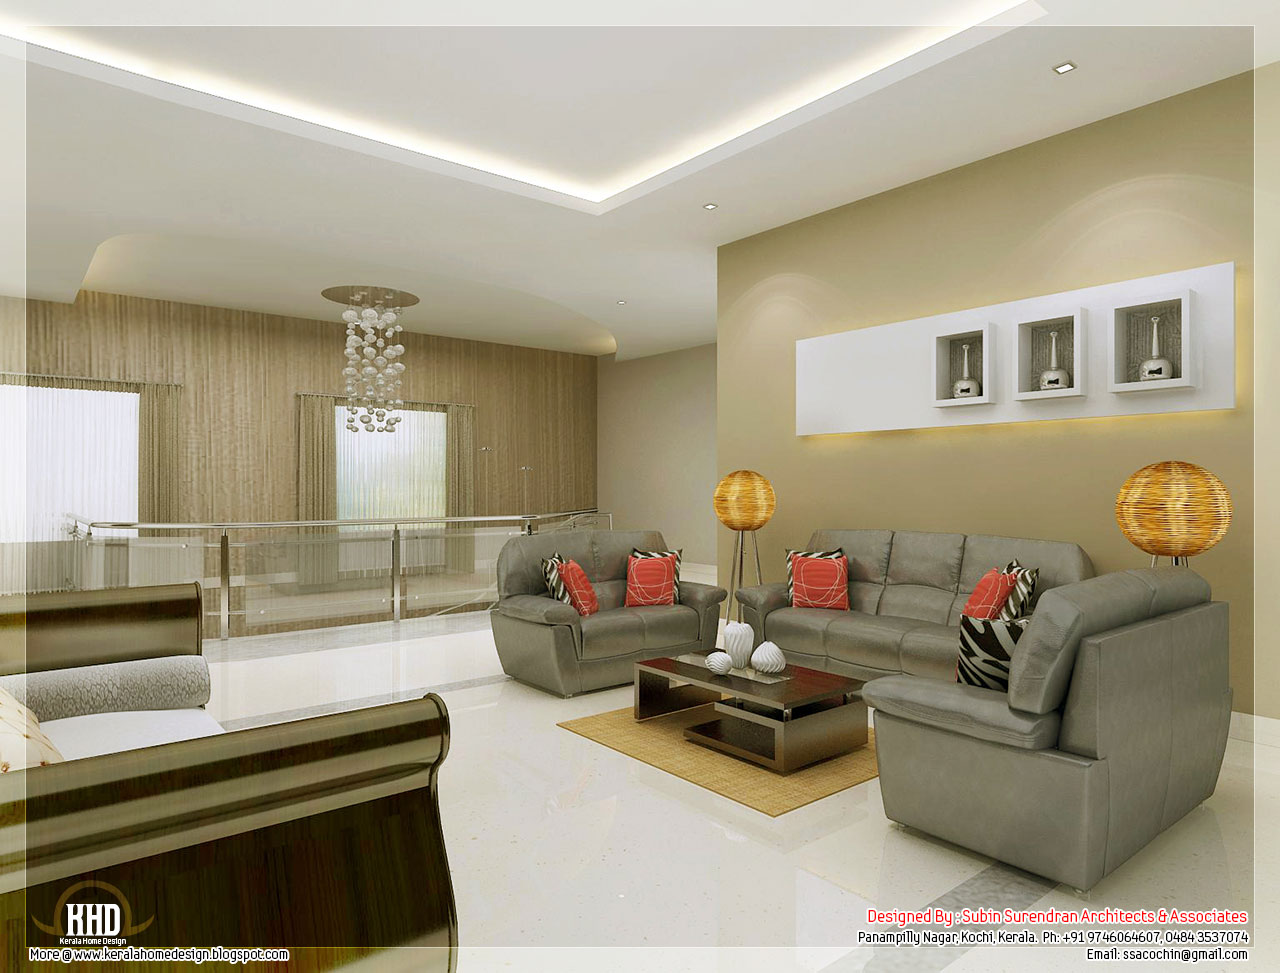 Awesome 3d interior renderings kerala home design and floor plans - Home interiors living room ...